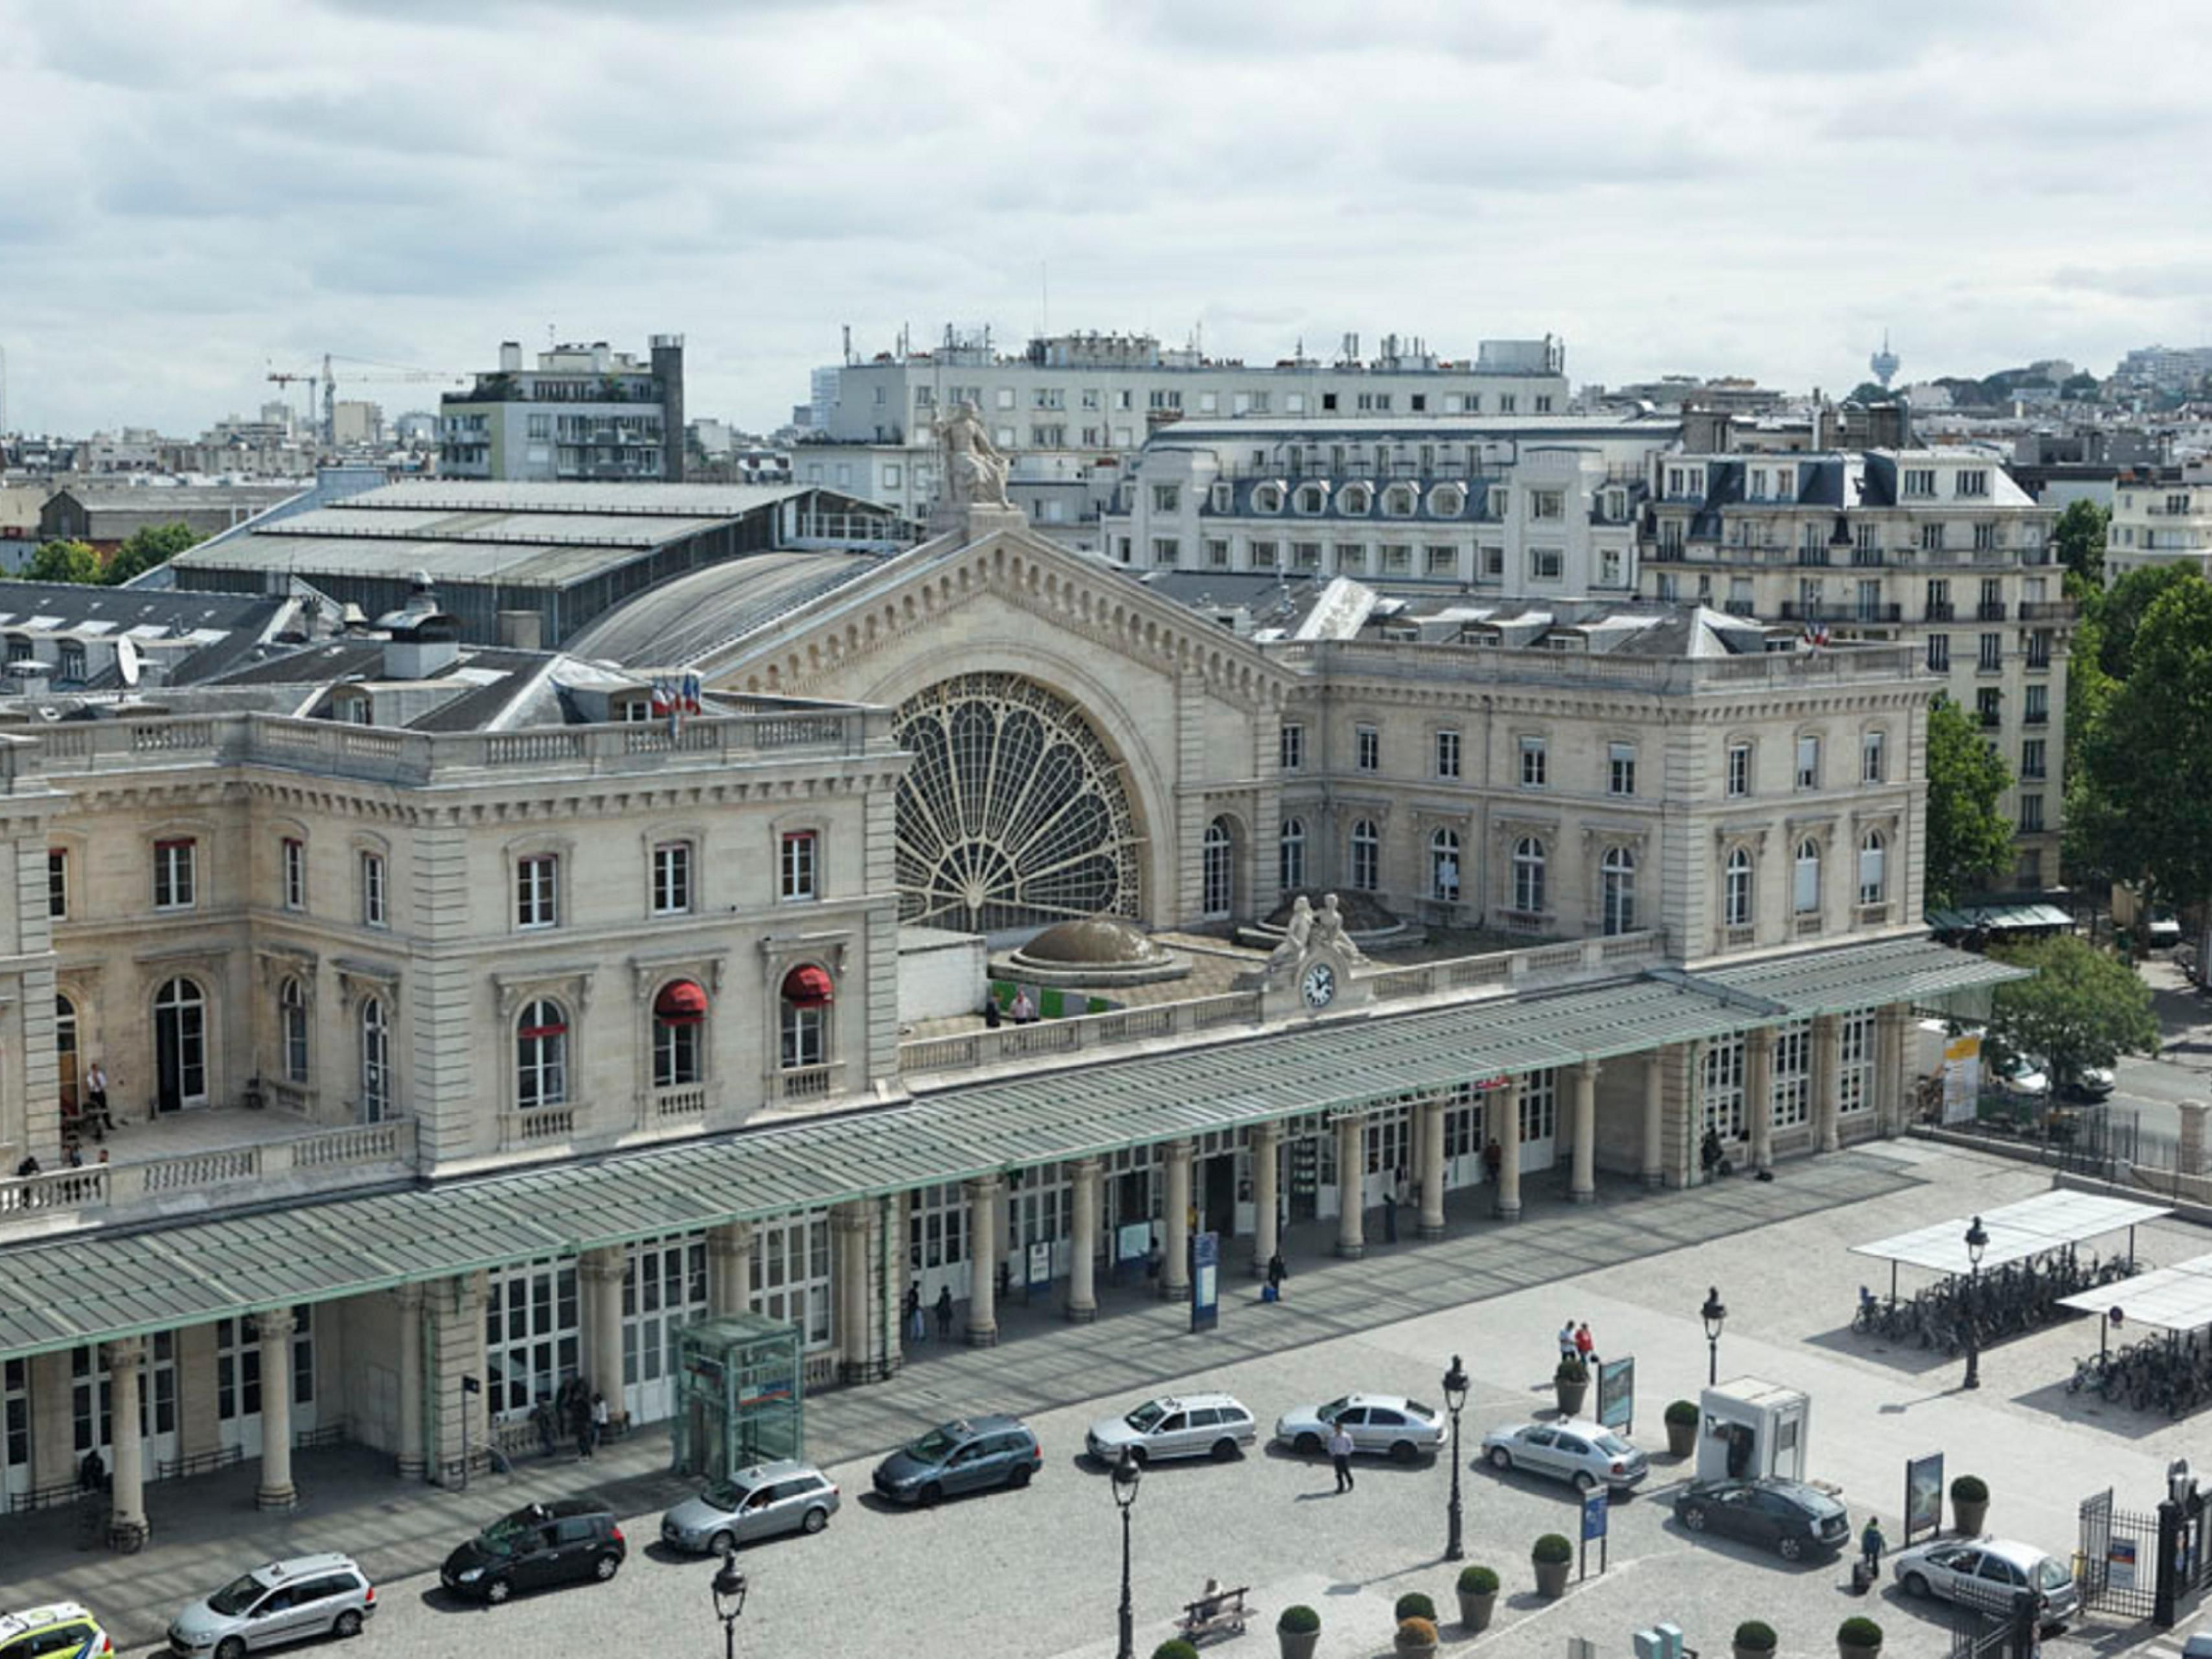 View from Hotel on Gare de l'Est